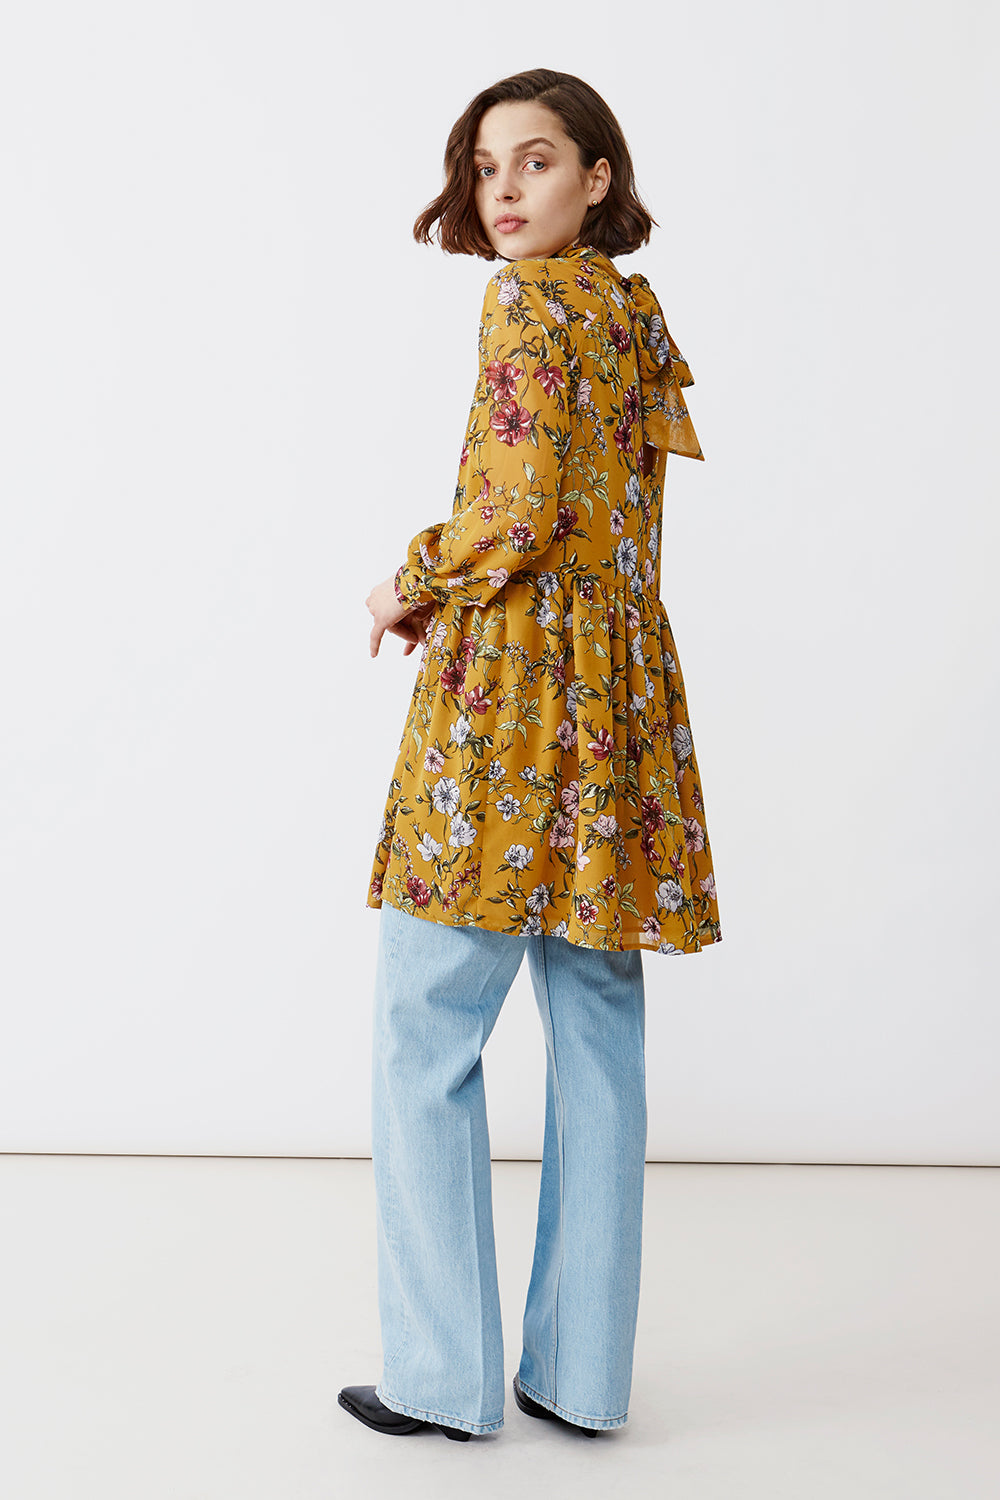 AGNES RUST FLOWER DRESS - justBrazil store